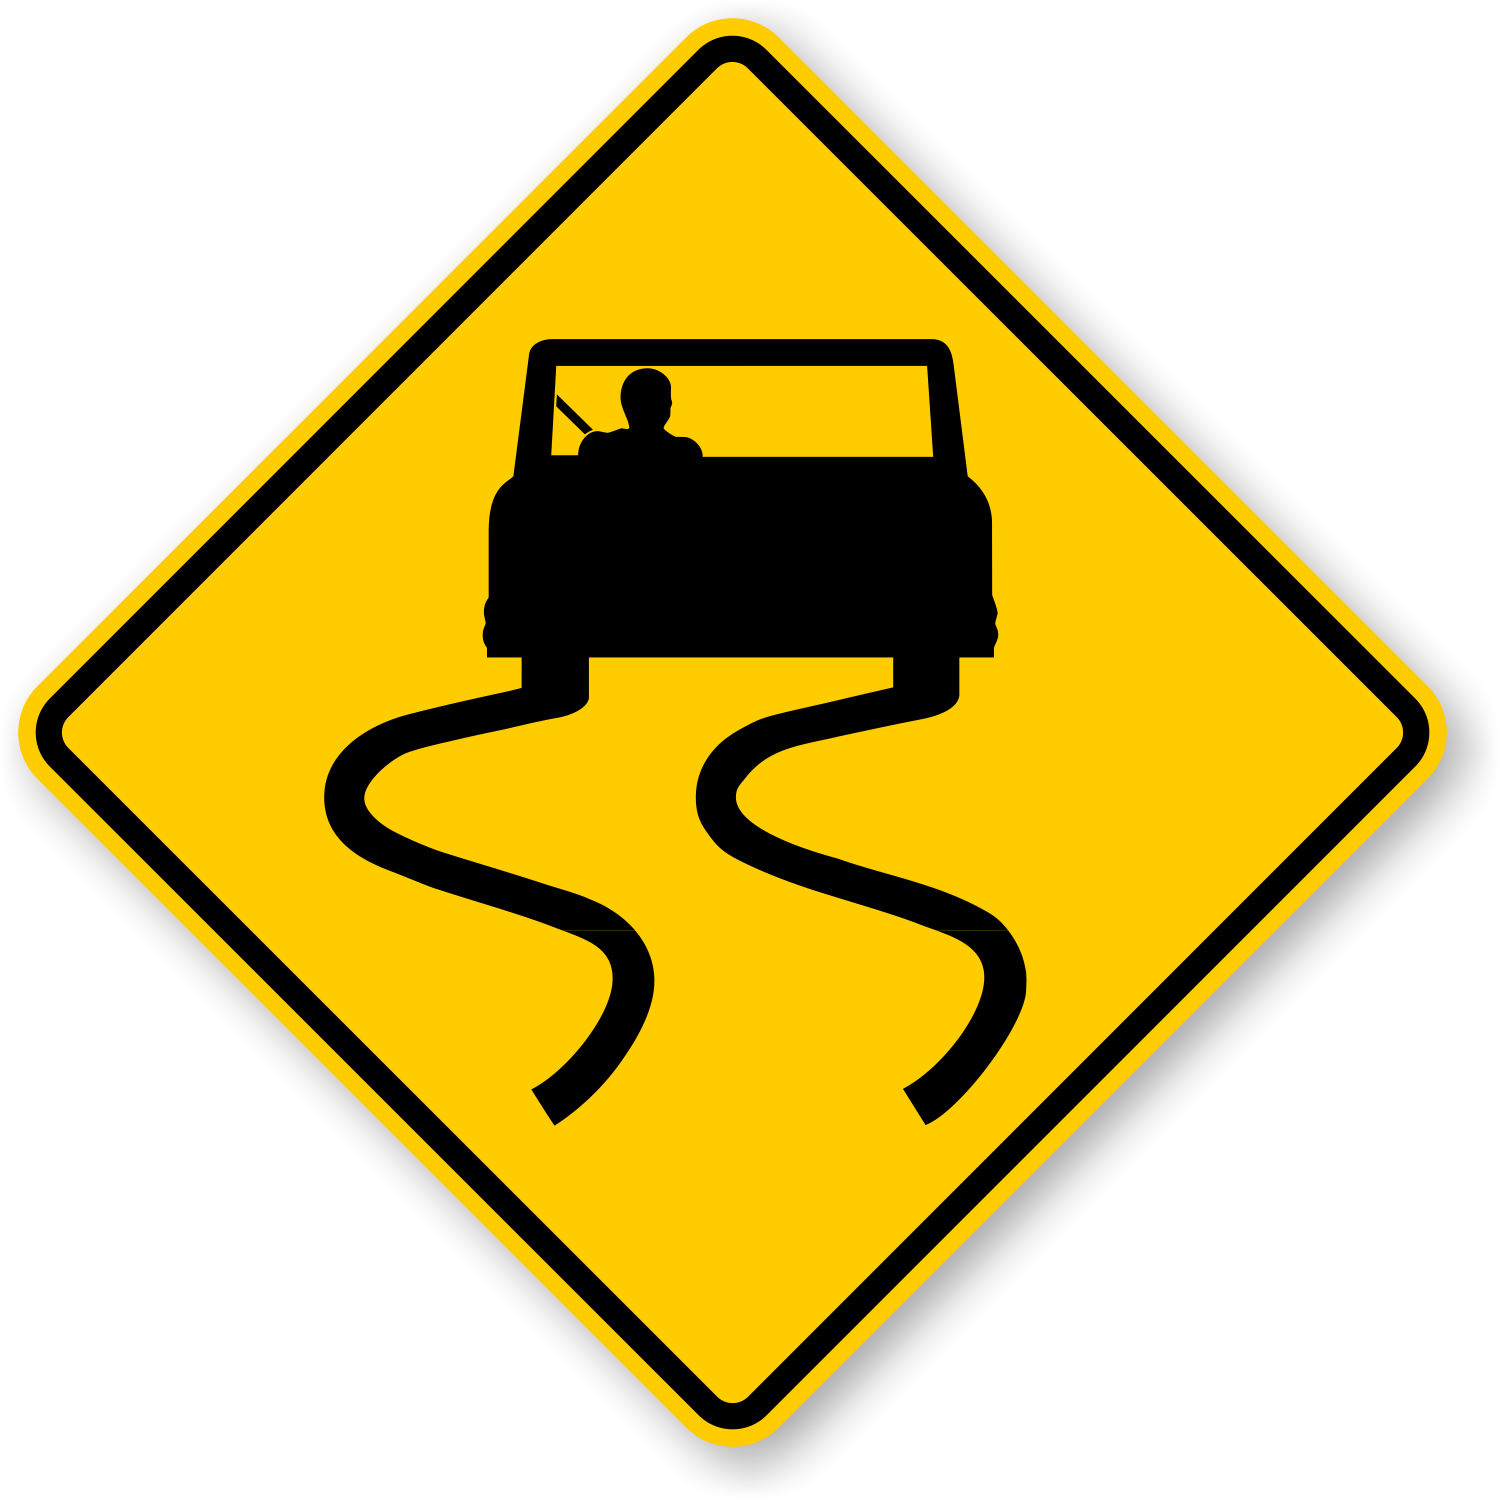 Slippery When Wet: Slippery When Wet symbol  Car